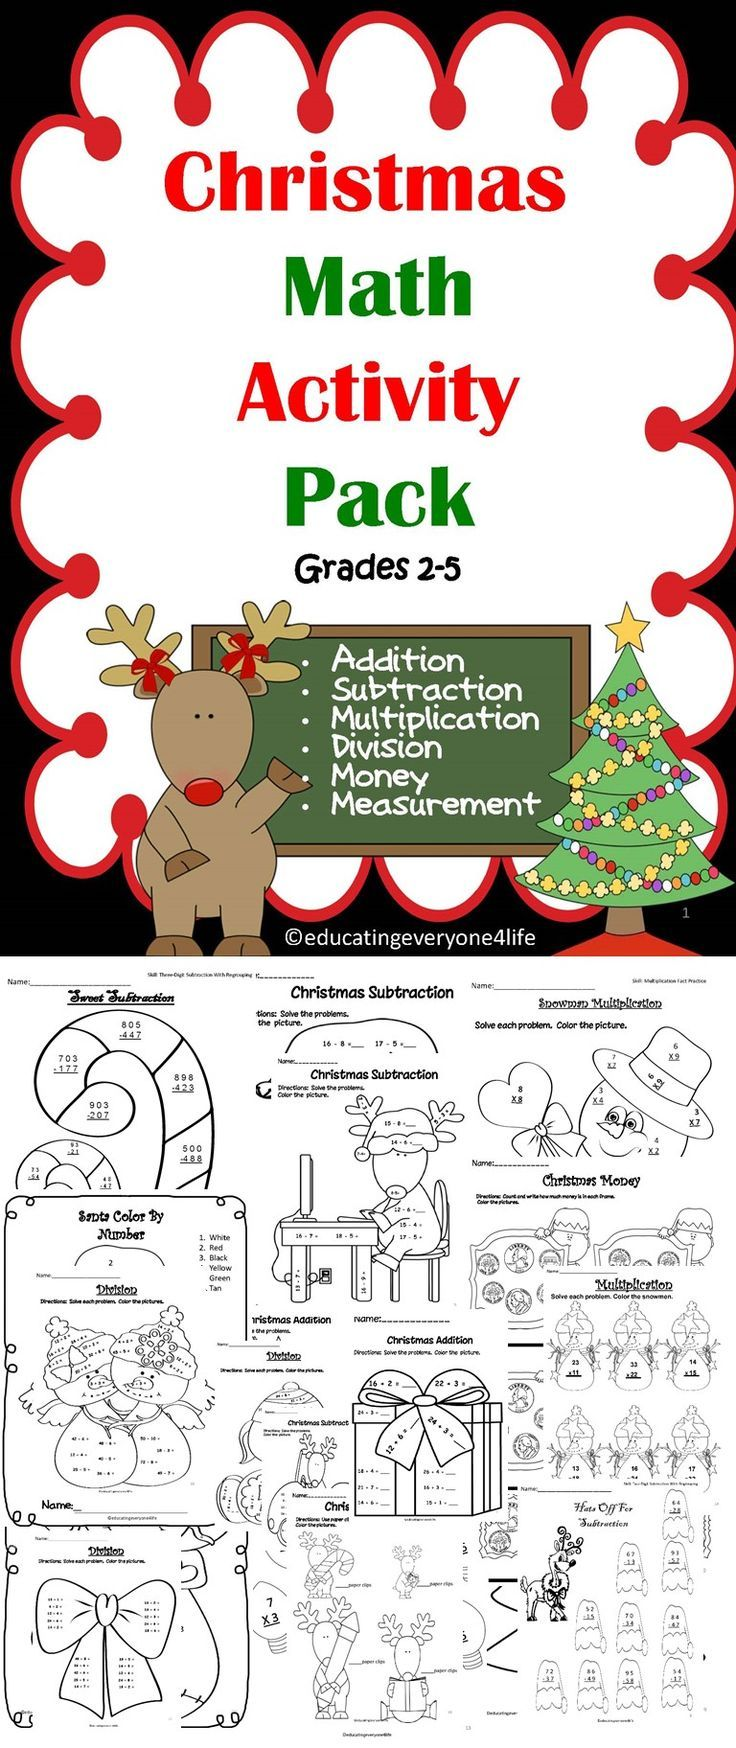 Merry Christmas! Celebrate the Christmas holiday with this fun and engaging math activity book for the classroom.